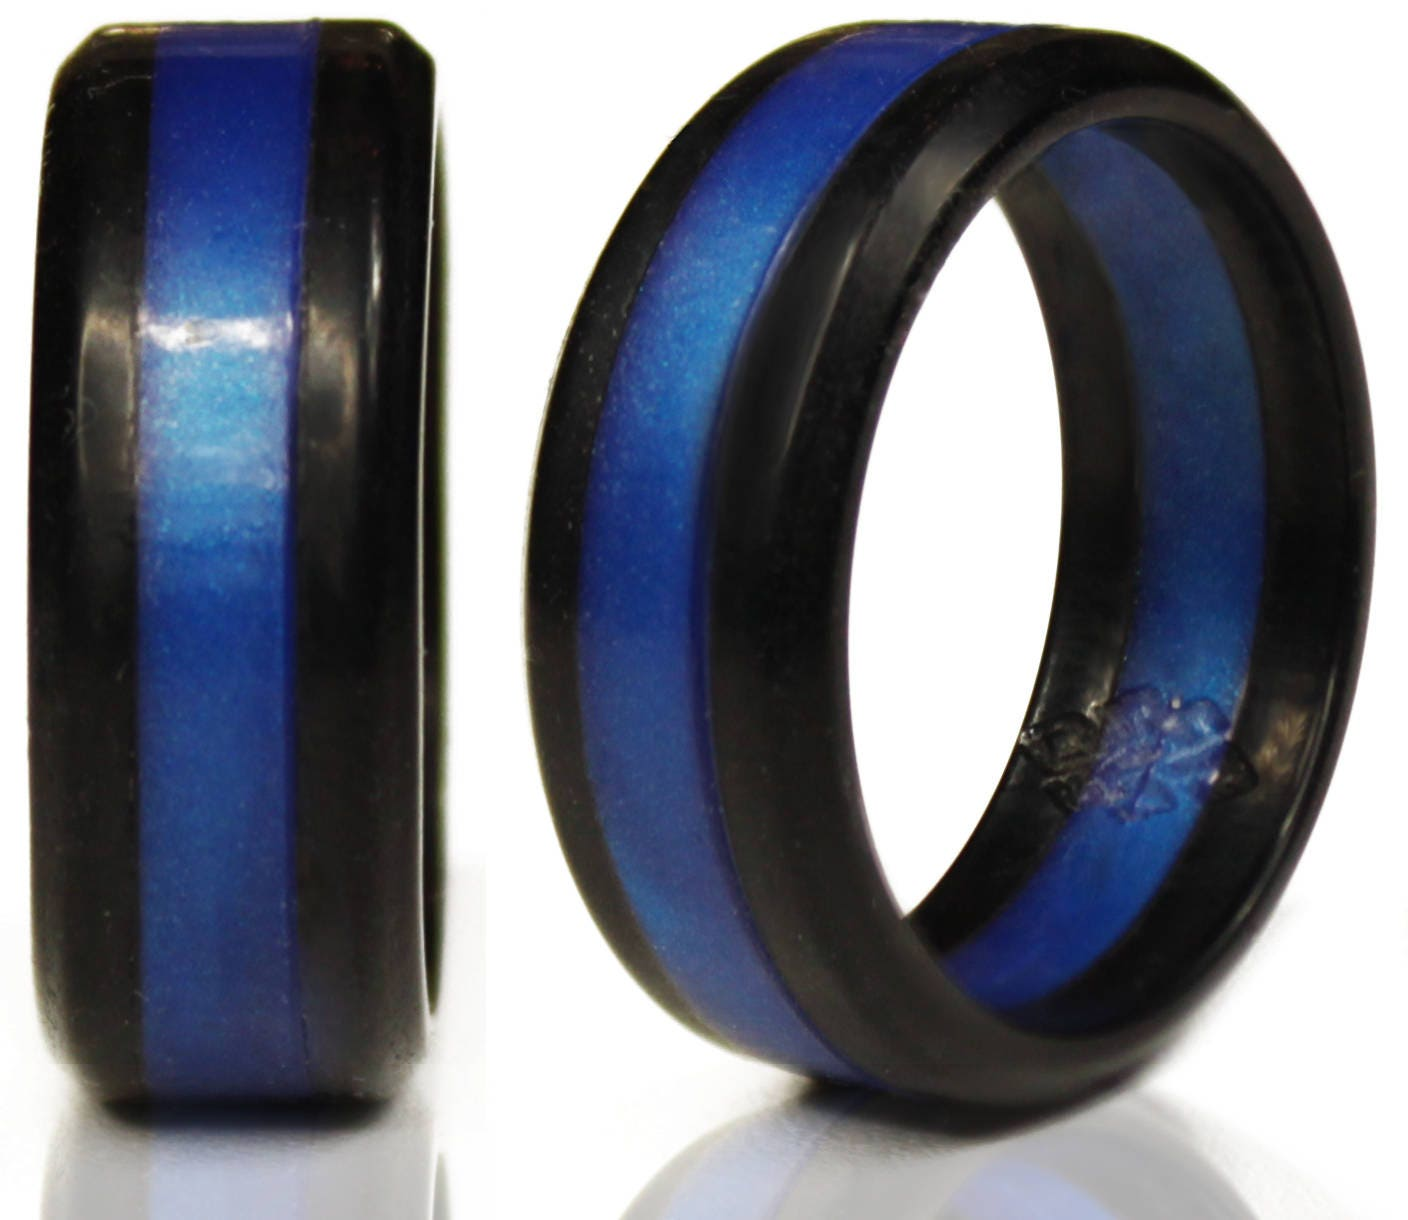 Silicone Wedding Ring.Silicone Wedding Rings By Knot Theory Black With Blue Metallic Stripe Safe Lightweight Wedding Band